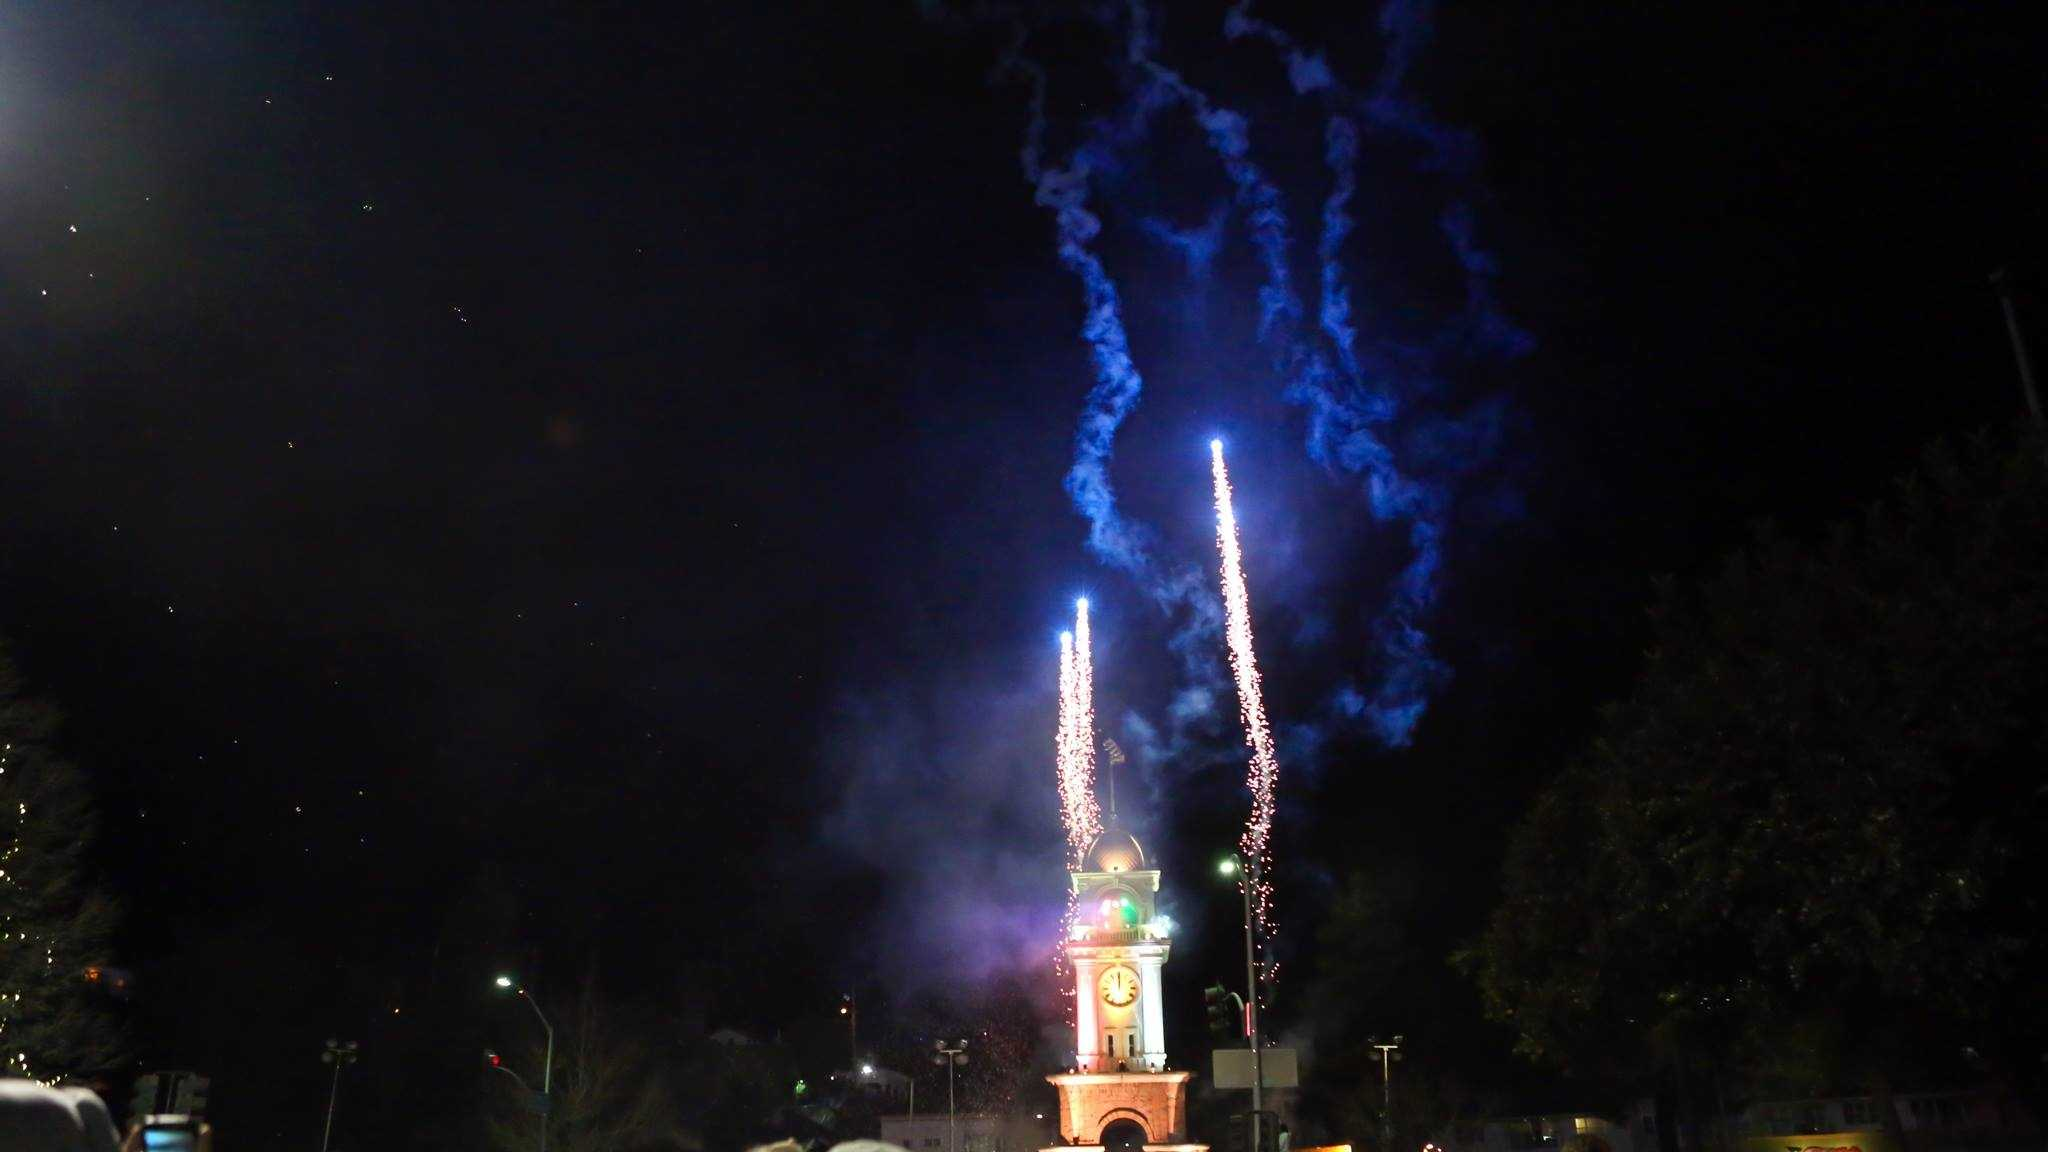 The Santa Cruz Clock Tower lit up at midnight with beautiful fireworks to celebrate 2015.